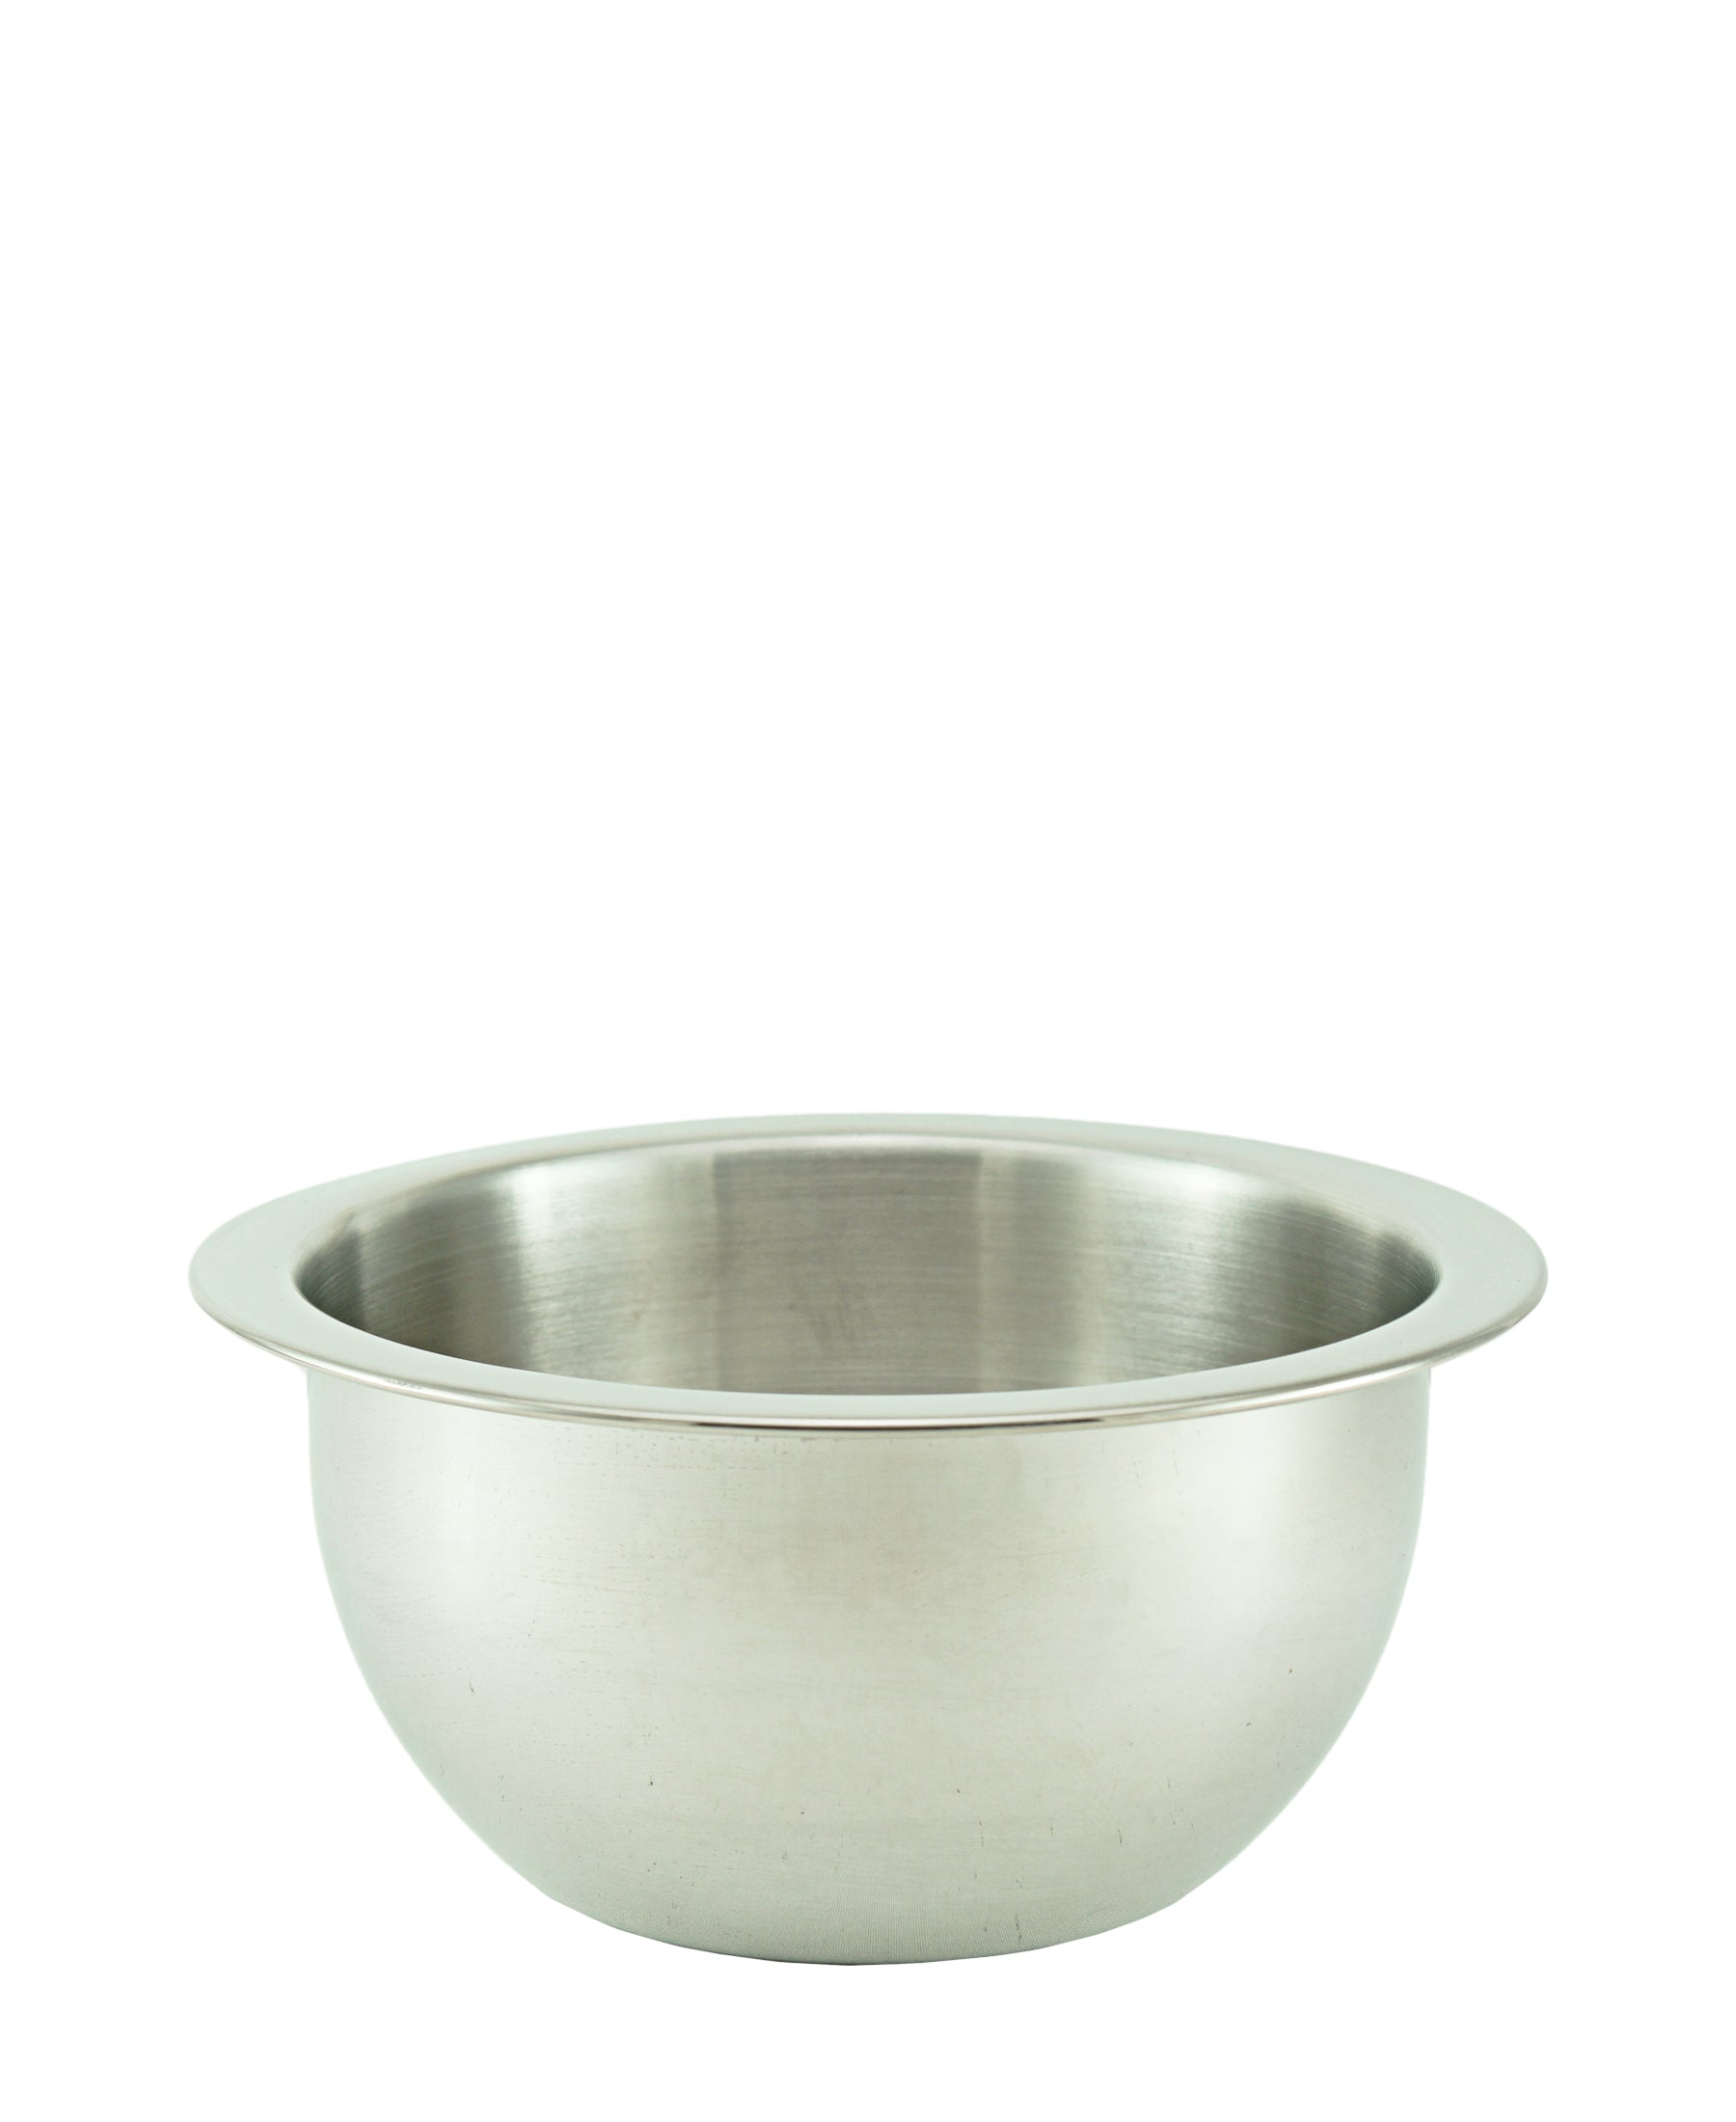 JW Mixing Bowl - Stainless Steel